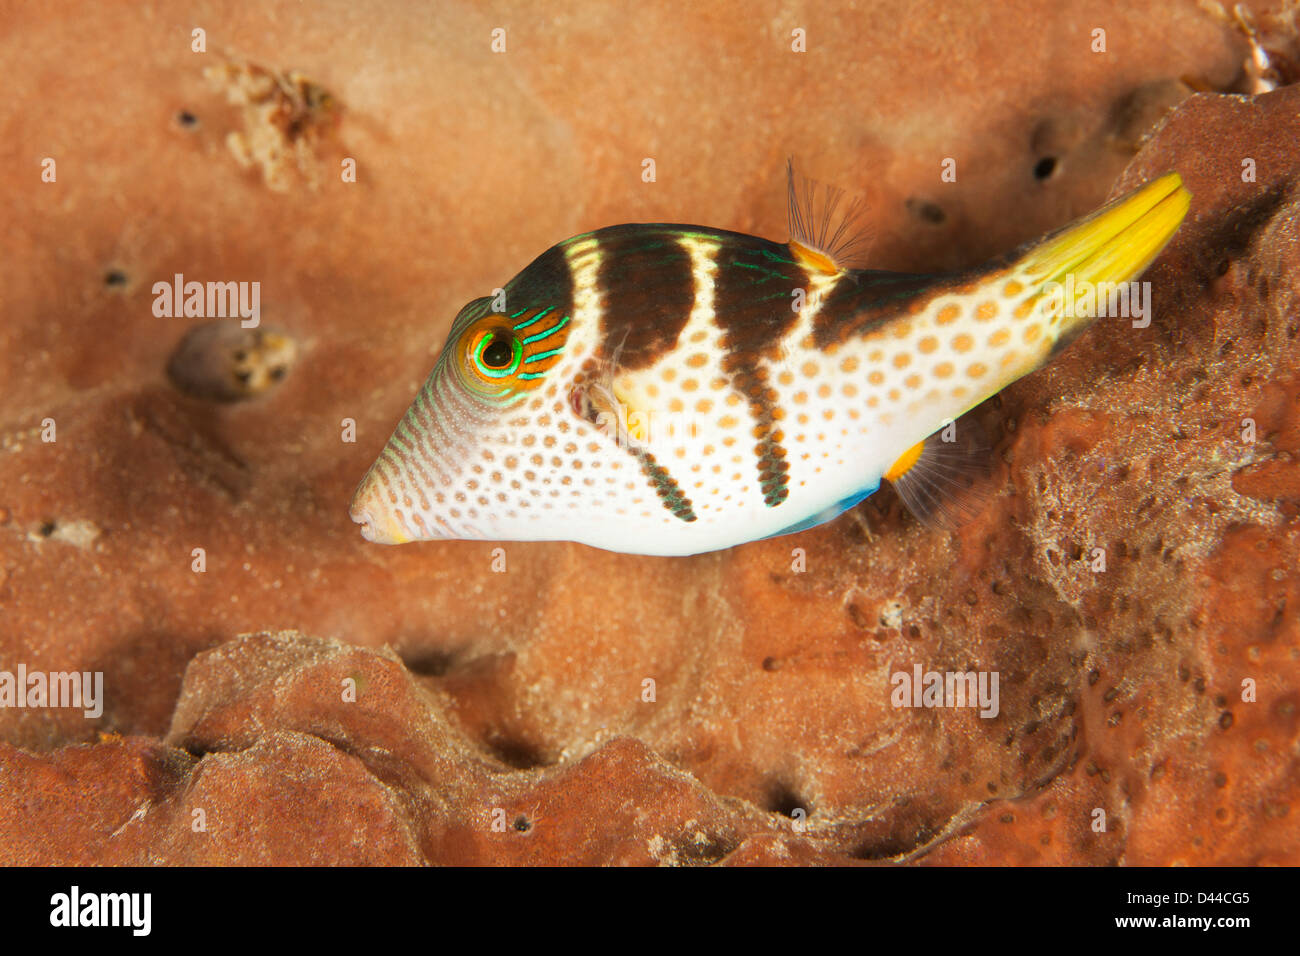 Black-saddled Toby (Canthigaster valentini) on a tropical coral reef in Bali, Indonesia. Stock Photo